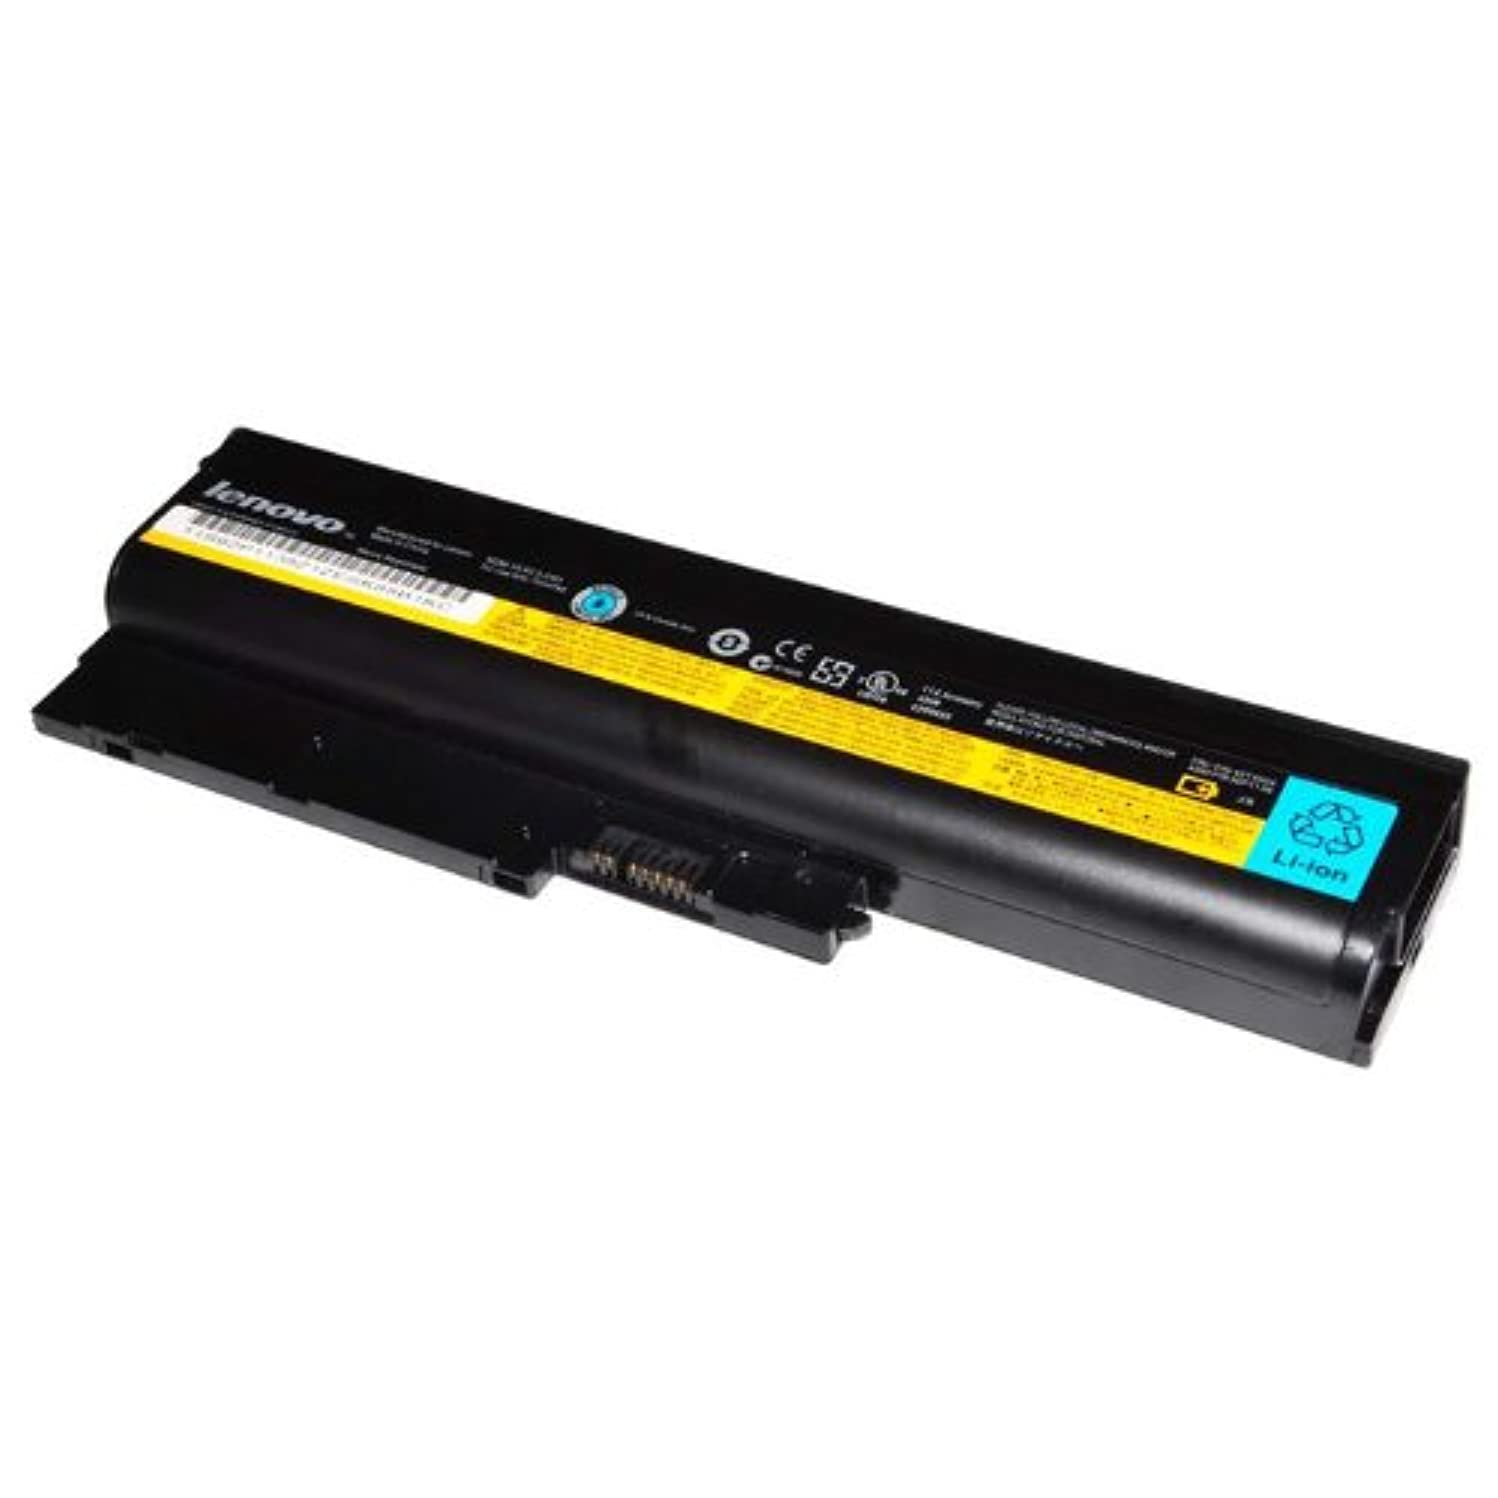 Brand New replacement Laptop Battery for T60,T60p,T61,T61p,R61i,R61e,R61,R60e,R60,R500,T500,W500,SL500,SL400,SL300,FRU-92P1141,FRU-92P1139,FRU-92P1137,ASM-92P1140,ASM-92P1138,92p1142,92P1141,92P1139,92P1137,92P1133,92P1132,43r9250,42t5246,42t4620,42t4511,40Y6799,40Y6797